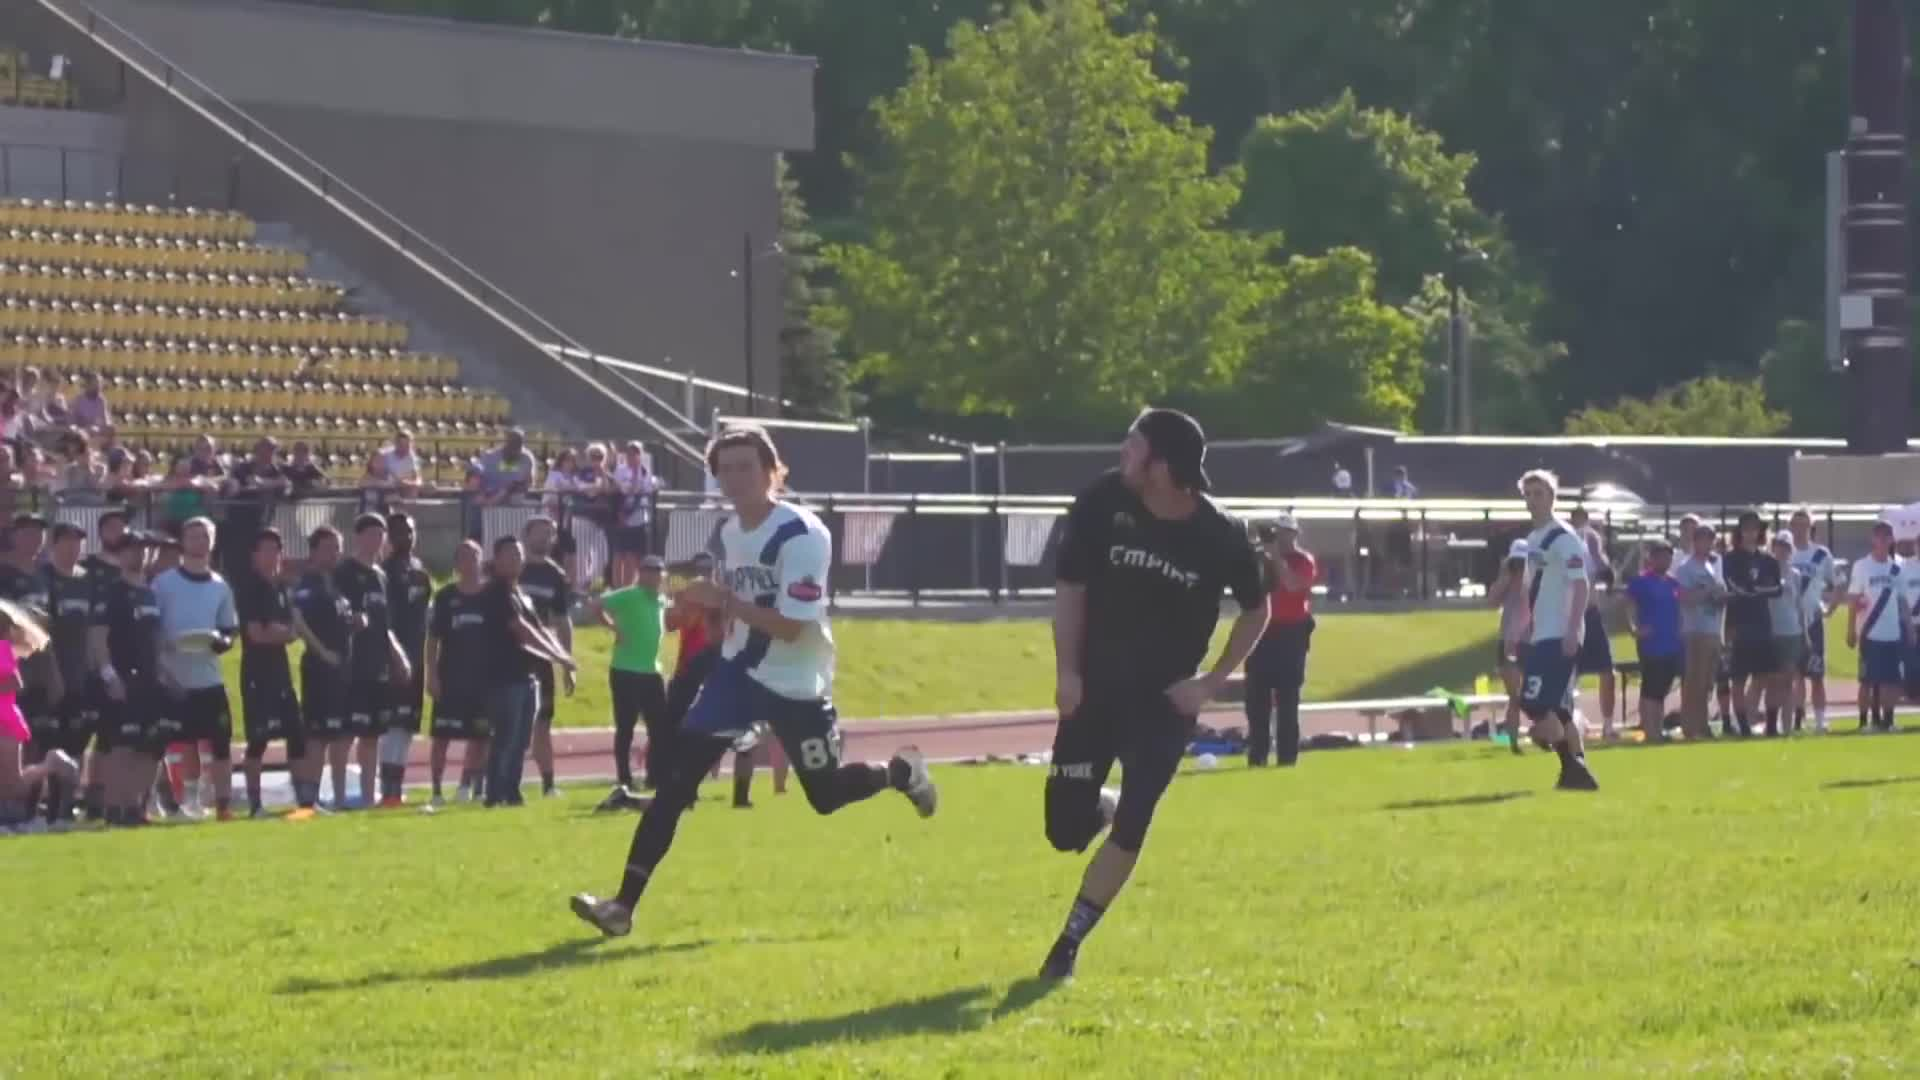 american ultimate disc league, audl, ben jagt, highlights, justin allen, marques brownlee, new york empire, raleigh flyers, top 10, ultimate, ultimate frisbee, Ben Jagt Layout Goal GIFs